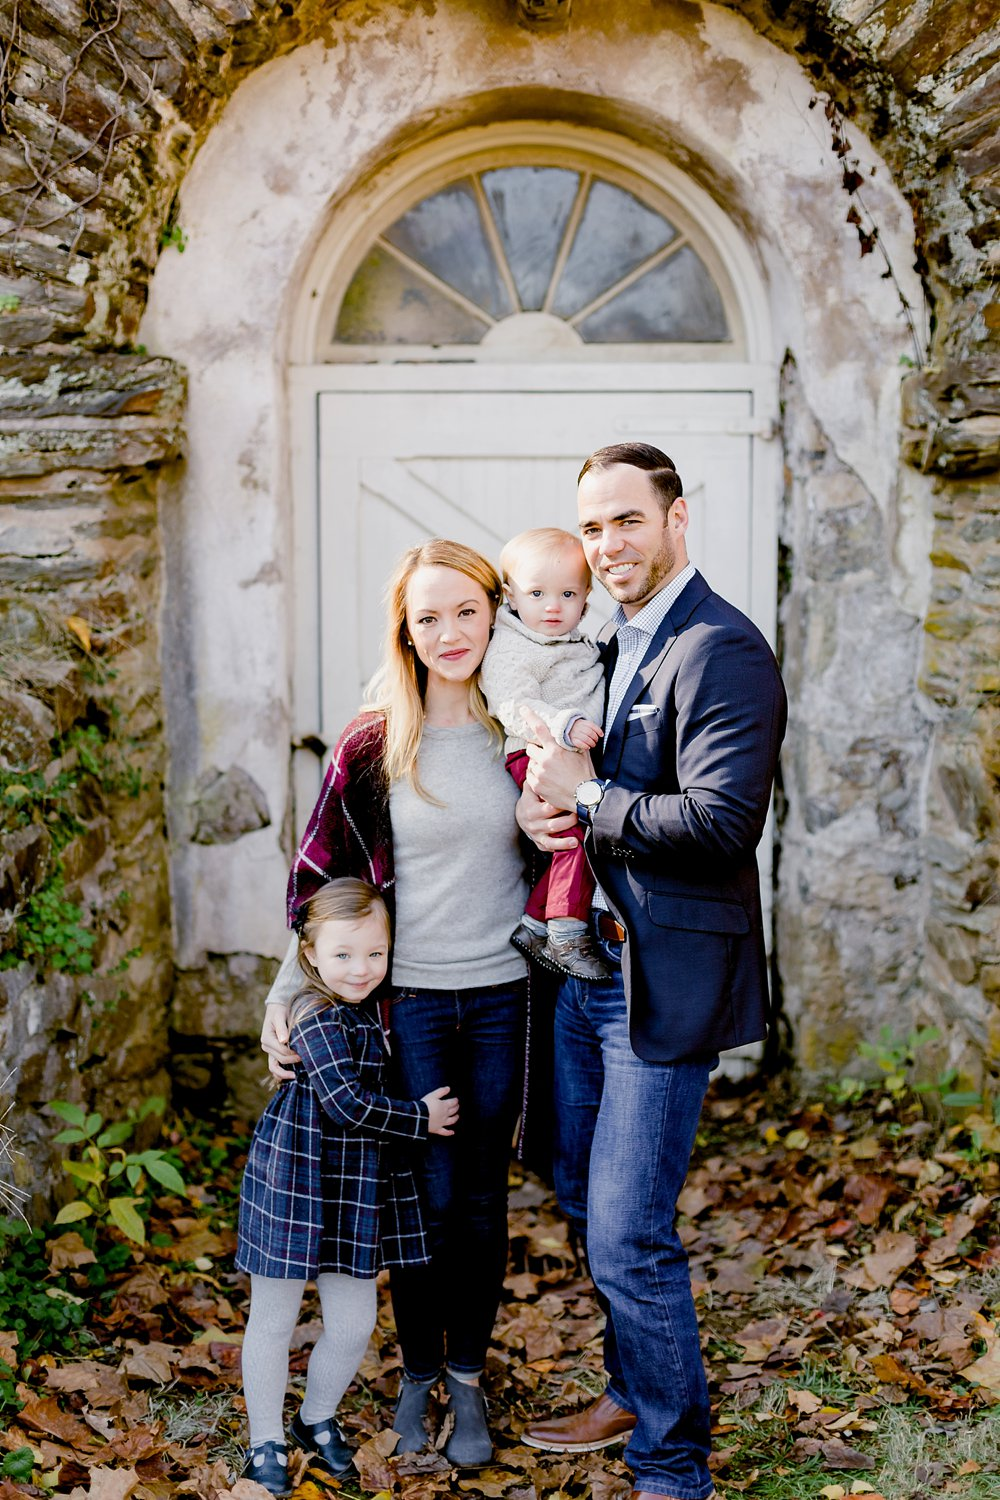 classic fall family portrait session photographed in valley forge national park